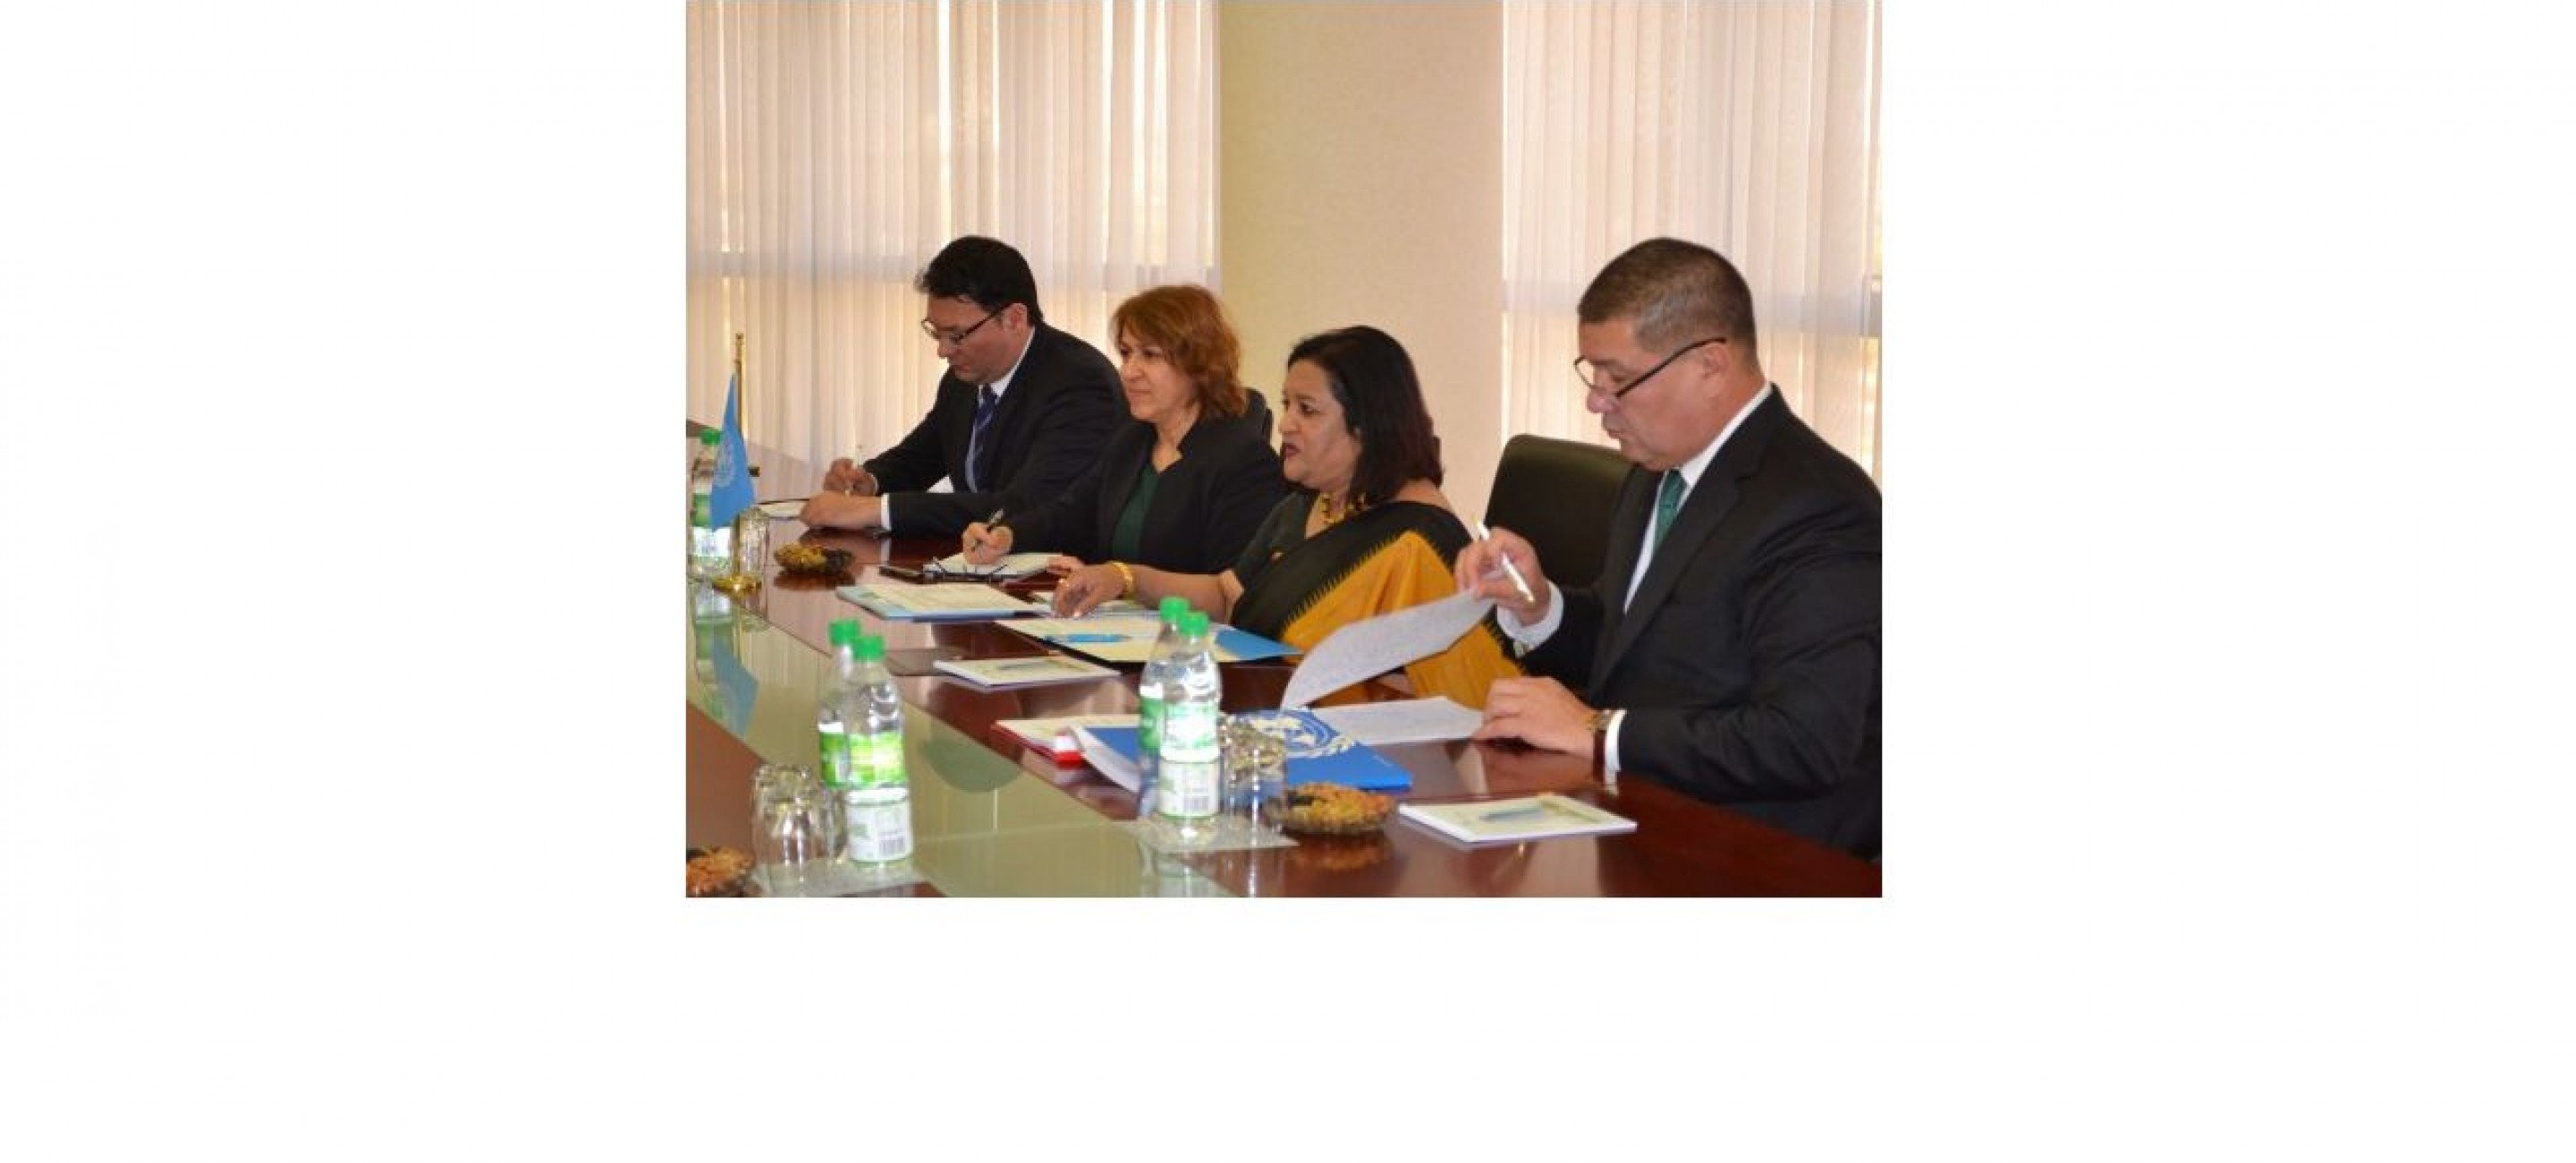 A MEETING WITH REPRESENTATIVES OF THE UNODC WAS HELD AT THE MFA OF TURKMENISTAN